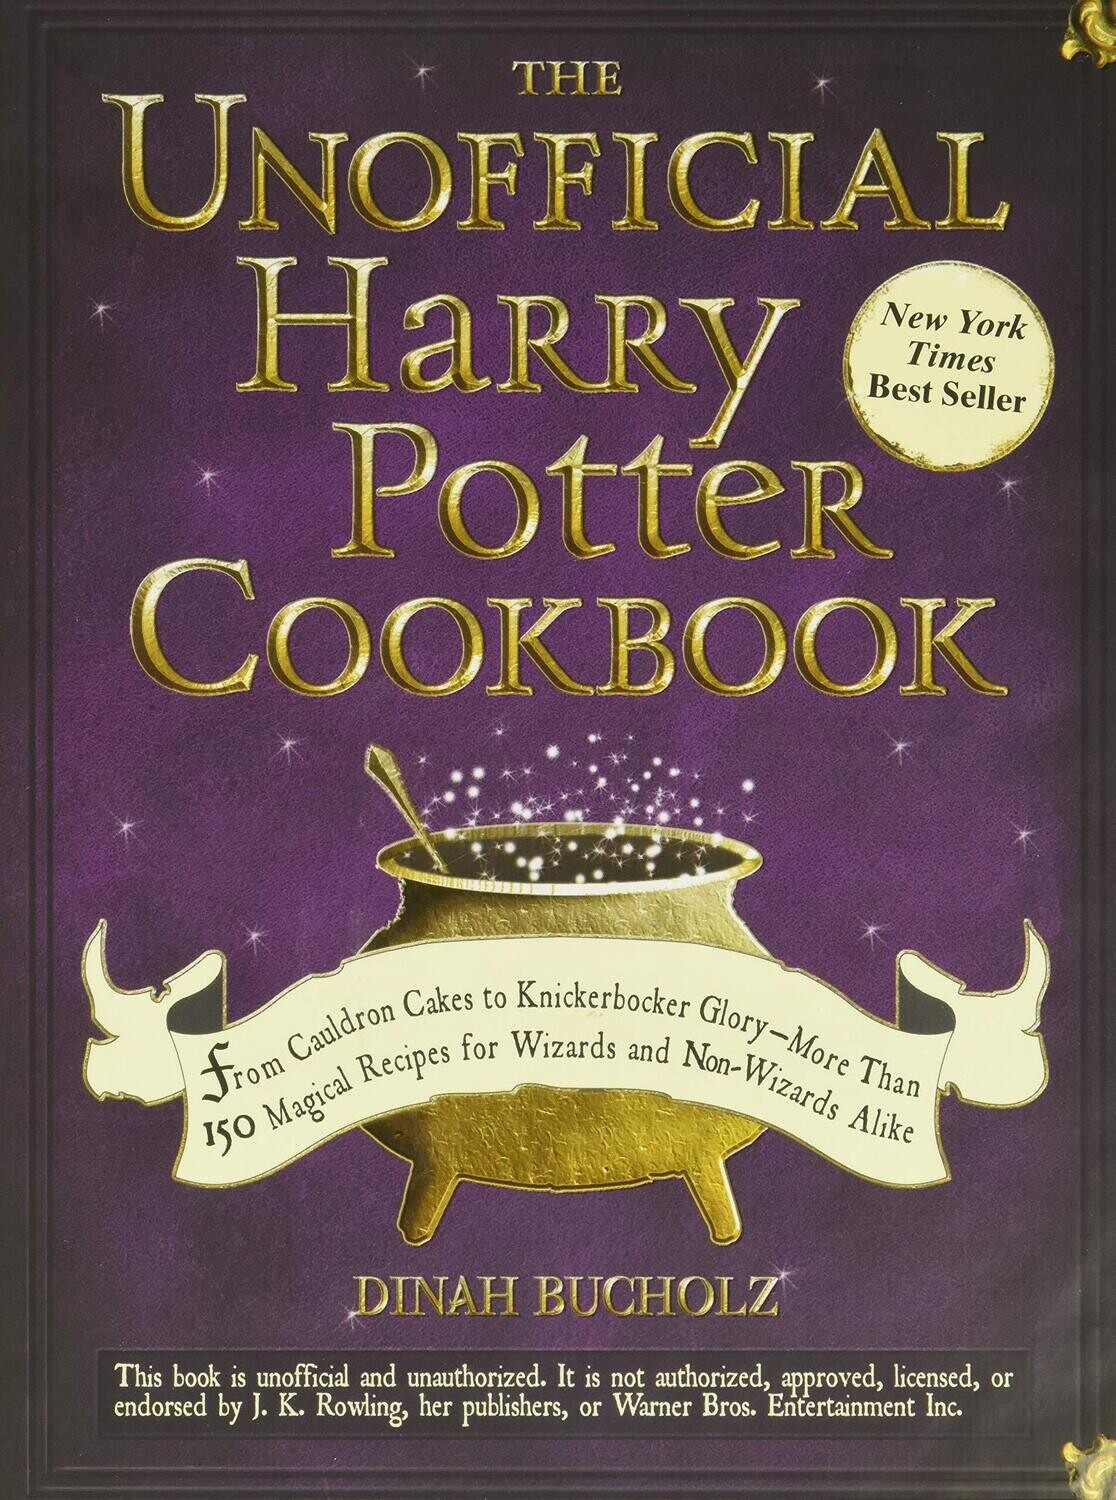 The Unofficial Harry Potter Cookbook: From Cauldron Cakes to Knickerbocker Glory [More Than 150 Magical Recipes for Wizards and Non-Wizards Alike] Hardback